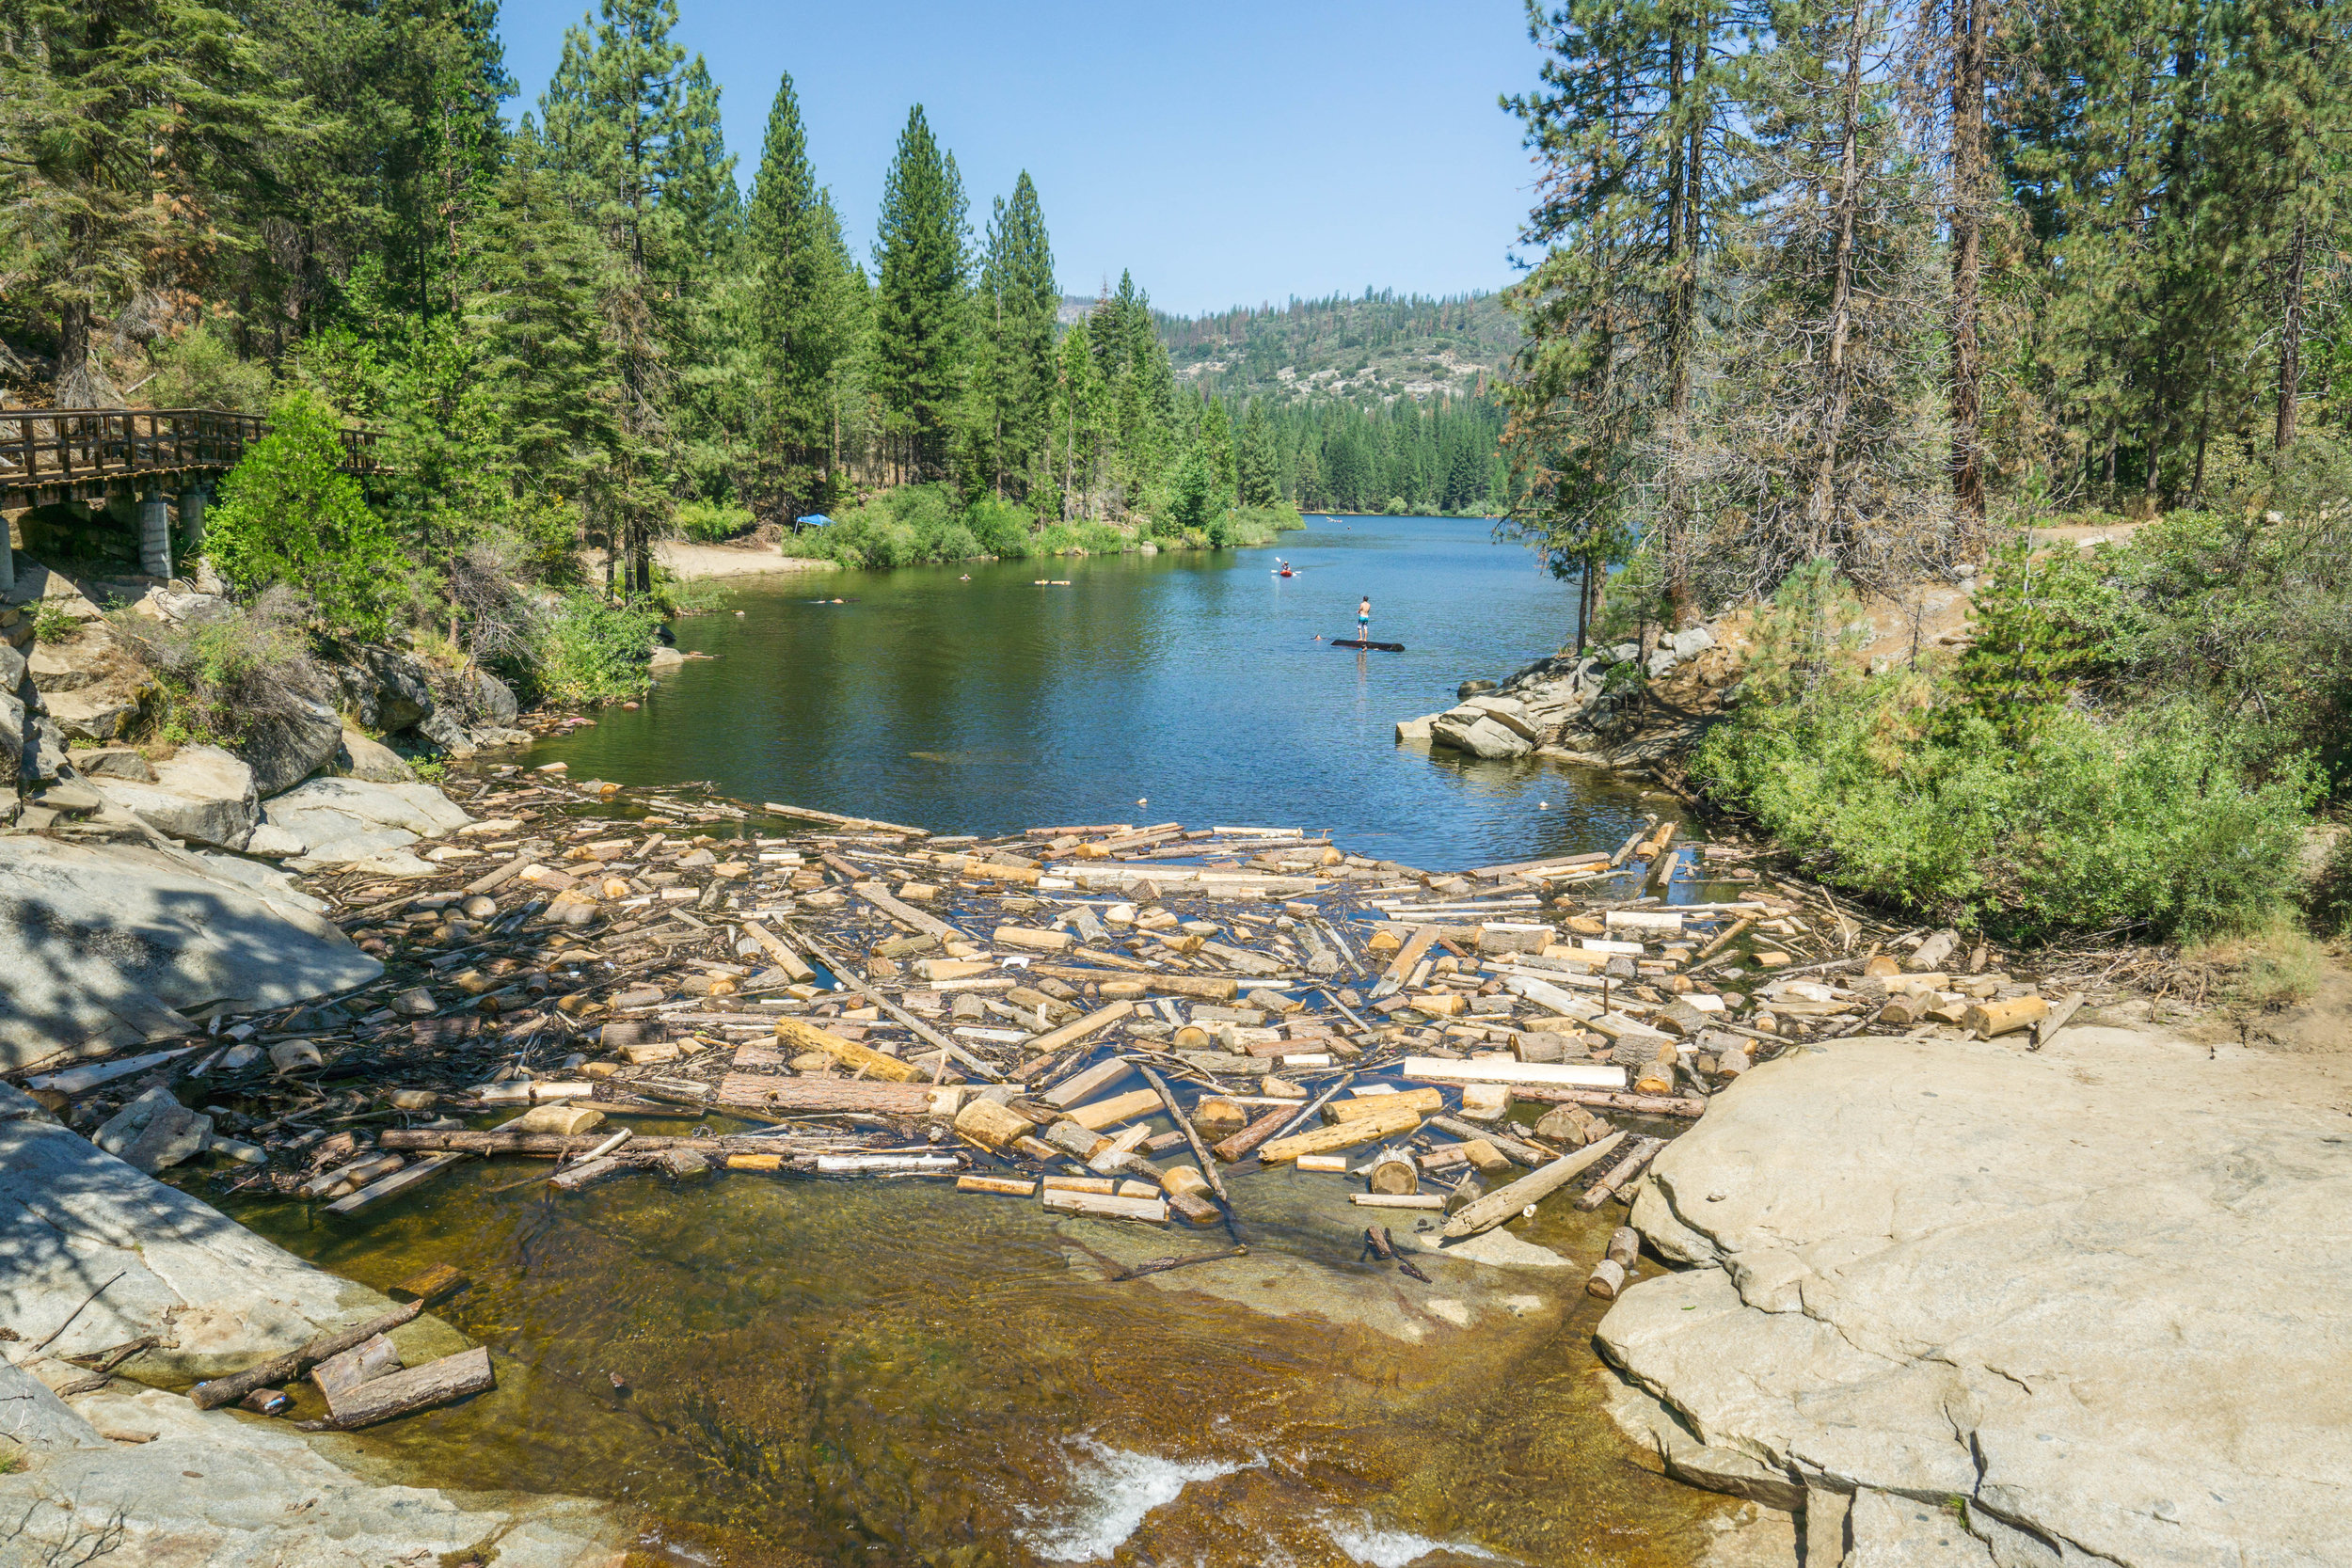 A mix of pine & Giant Sequoia logs create the perfect floatation devices. We'll revisit this in a bit!